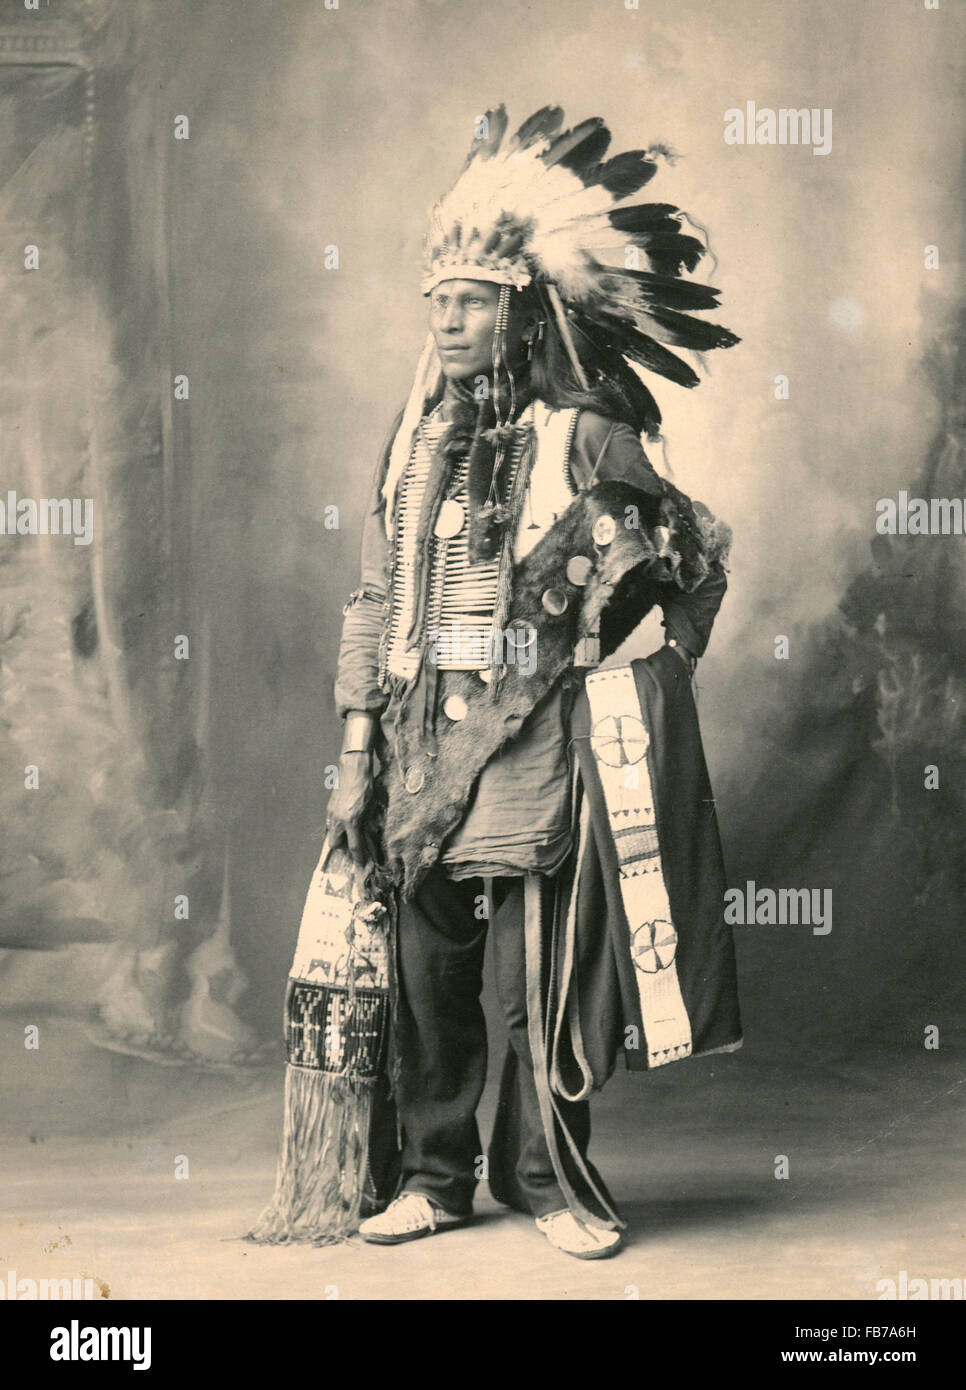 Native American Indian, Spotted Horse, Sioux Indian - Stock Image